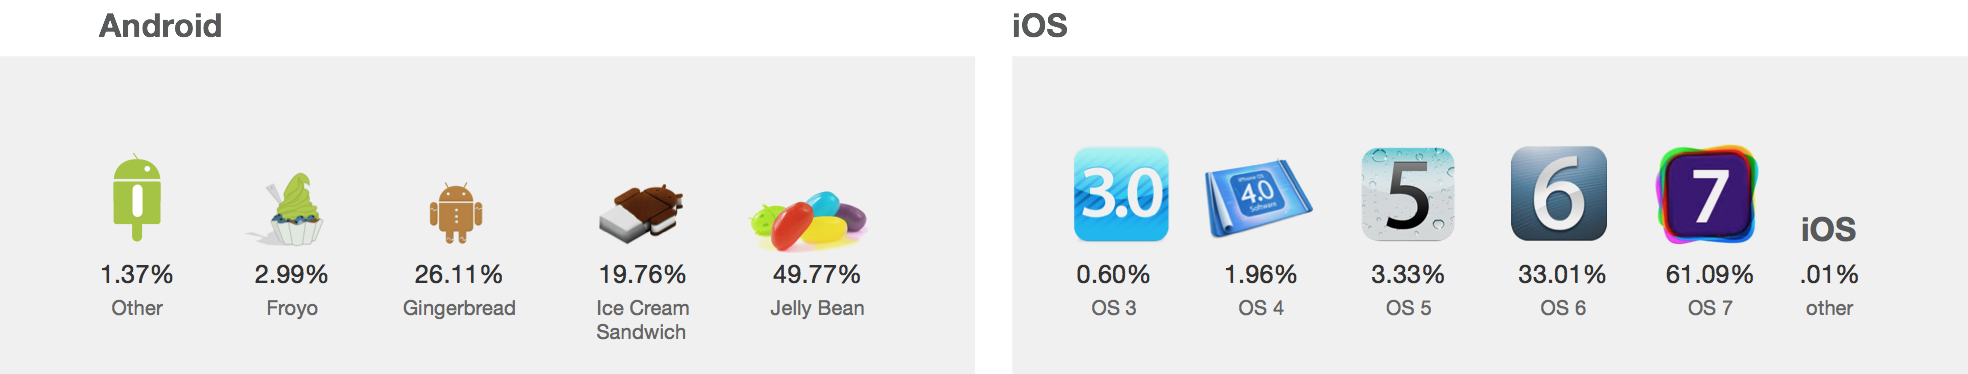 iOS-7-vs-Jelly-bean-usage